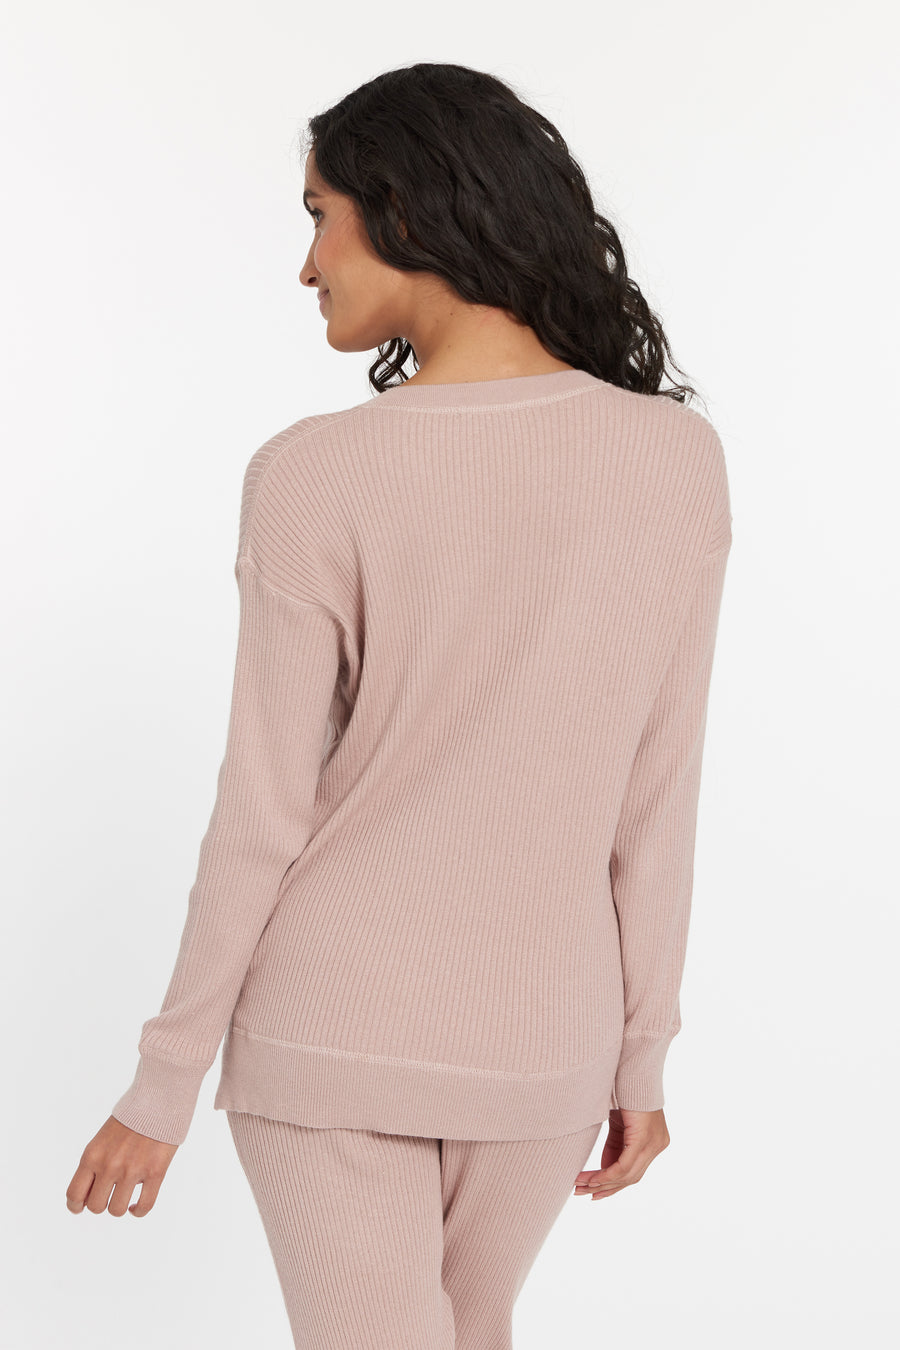 CABO SPLIT NECK TOP